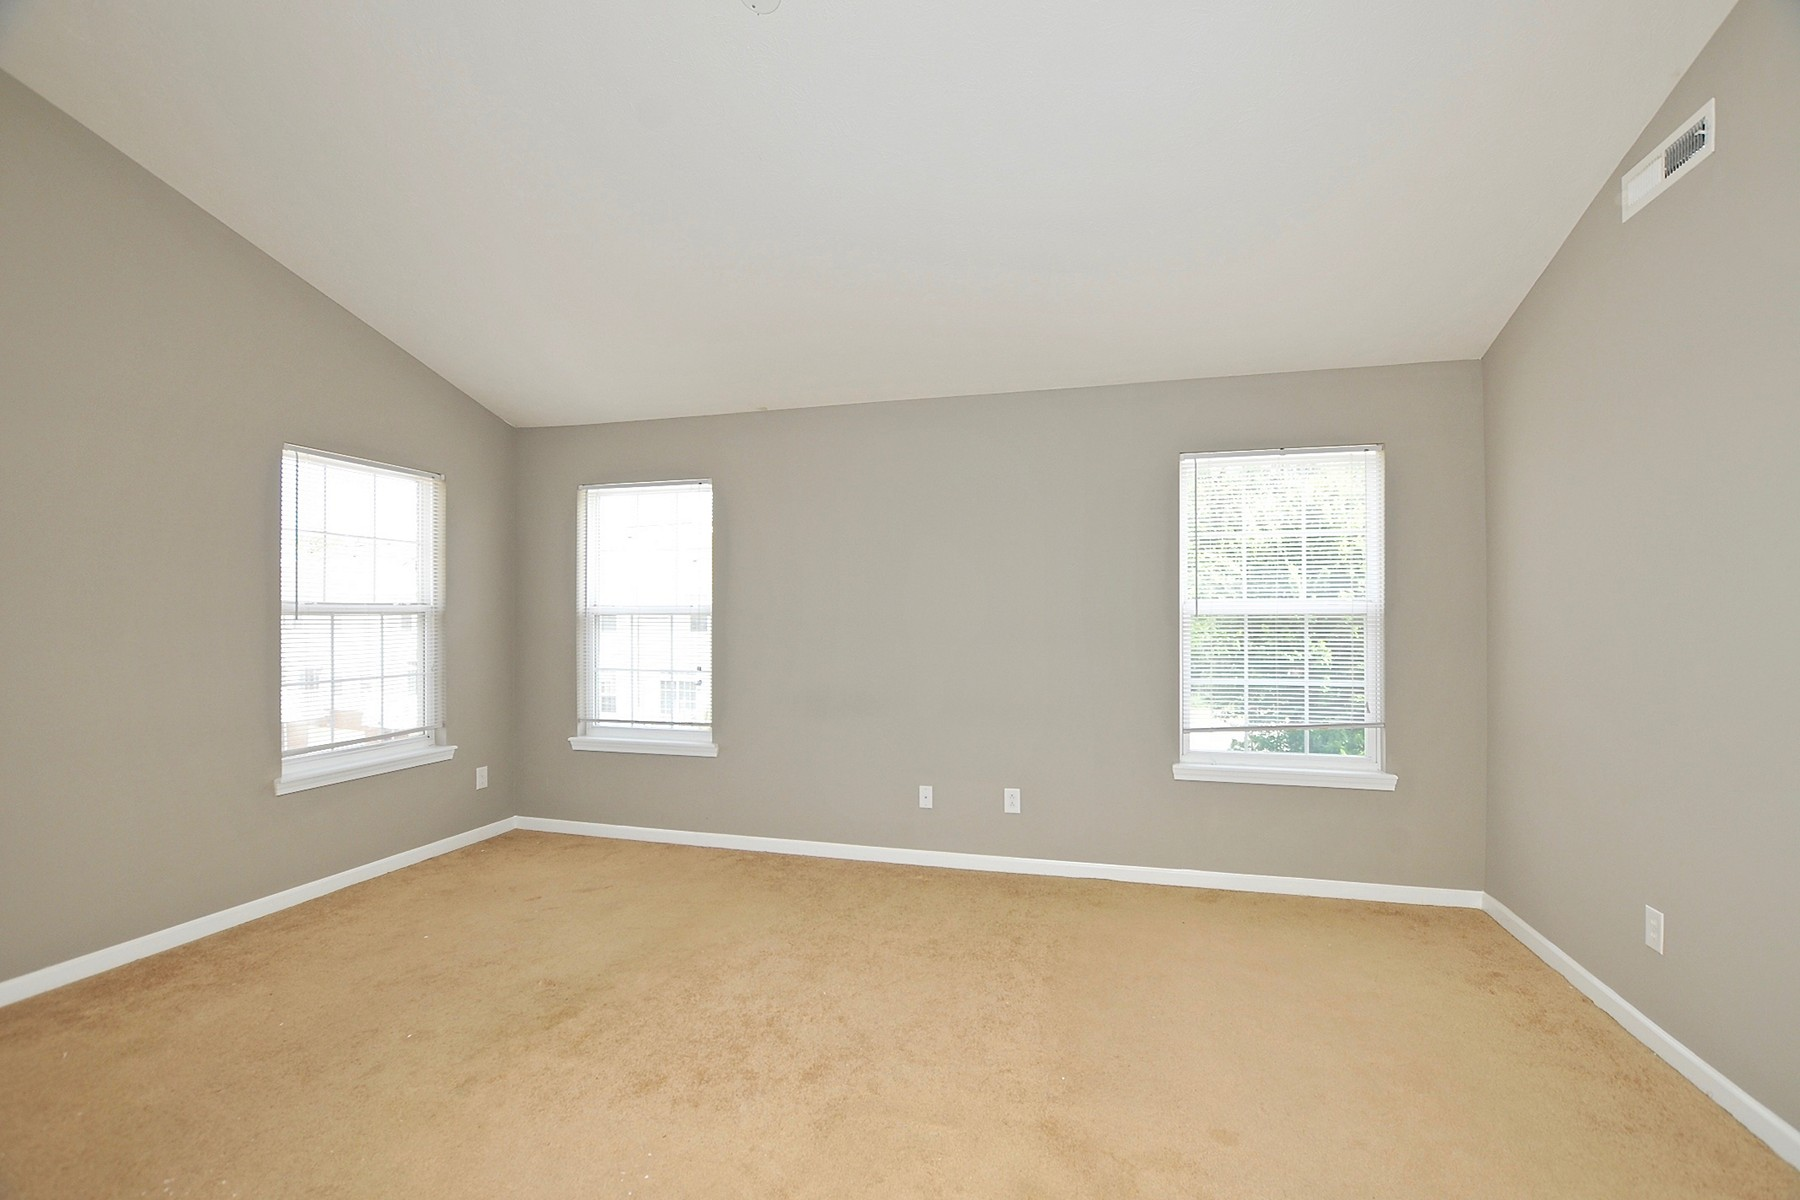 Additional photo for property listing at Immaculate End-Unit Townhome 1135 Cavendish Carmel, Indiana 46032 Estados Unidos